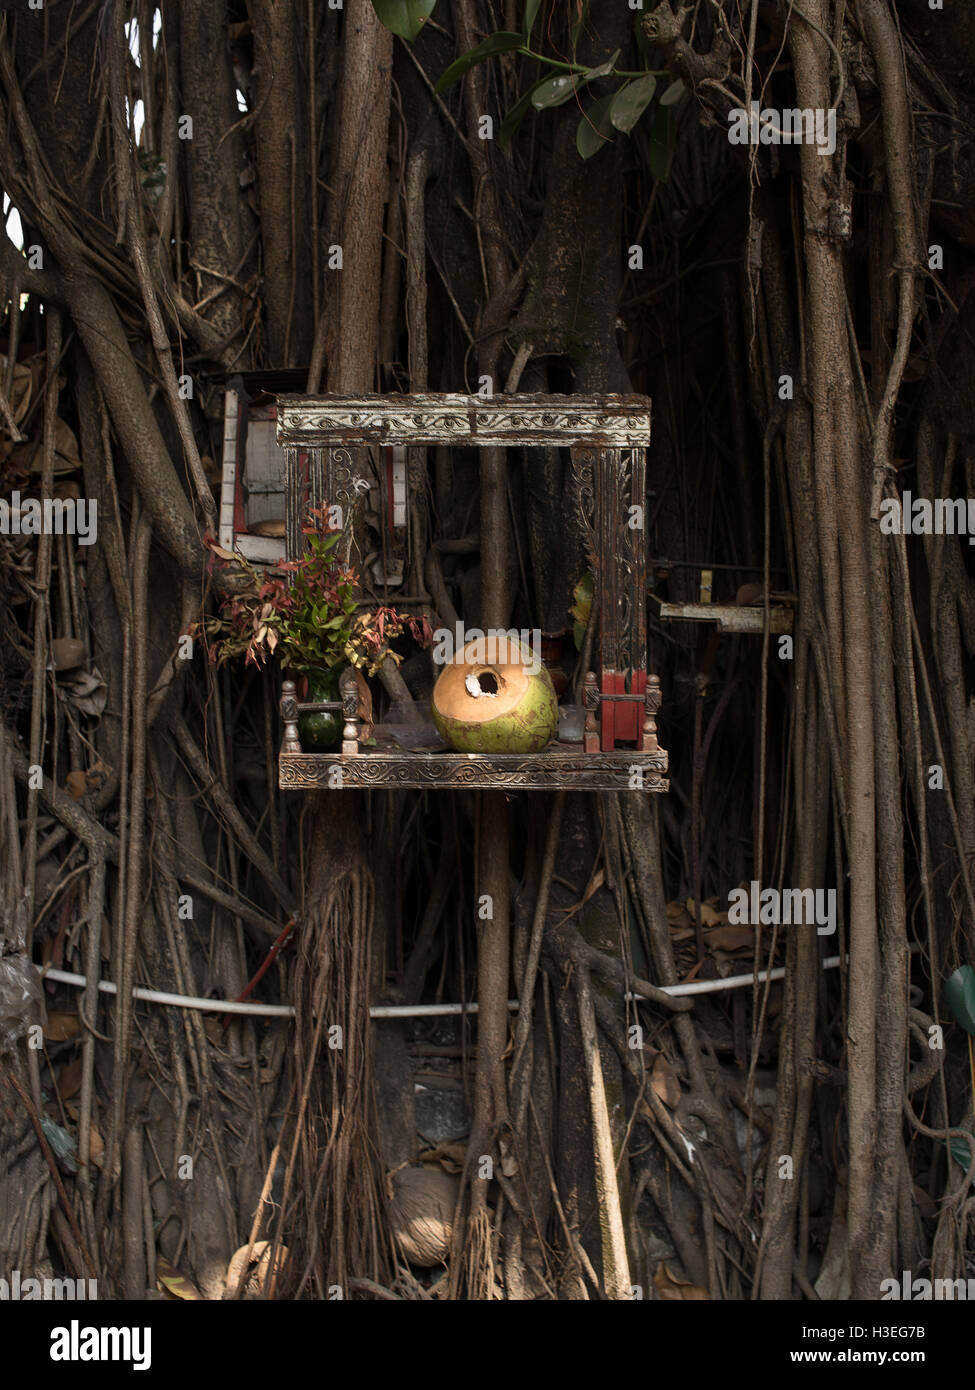 An offering of a coconut in a Buddhist shrine. Symbolic offerings are meant to be contemplative. - Stock Image